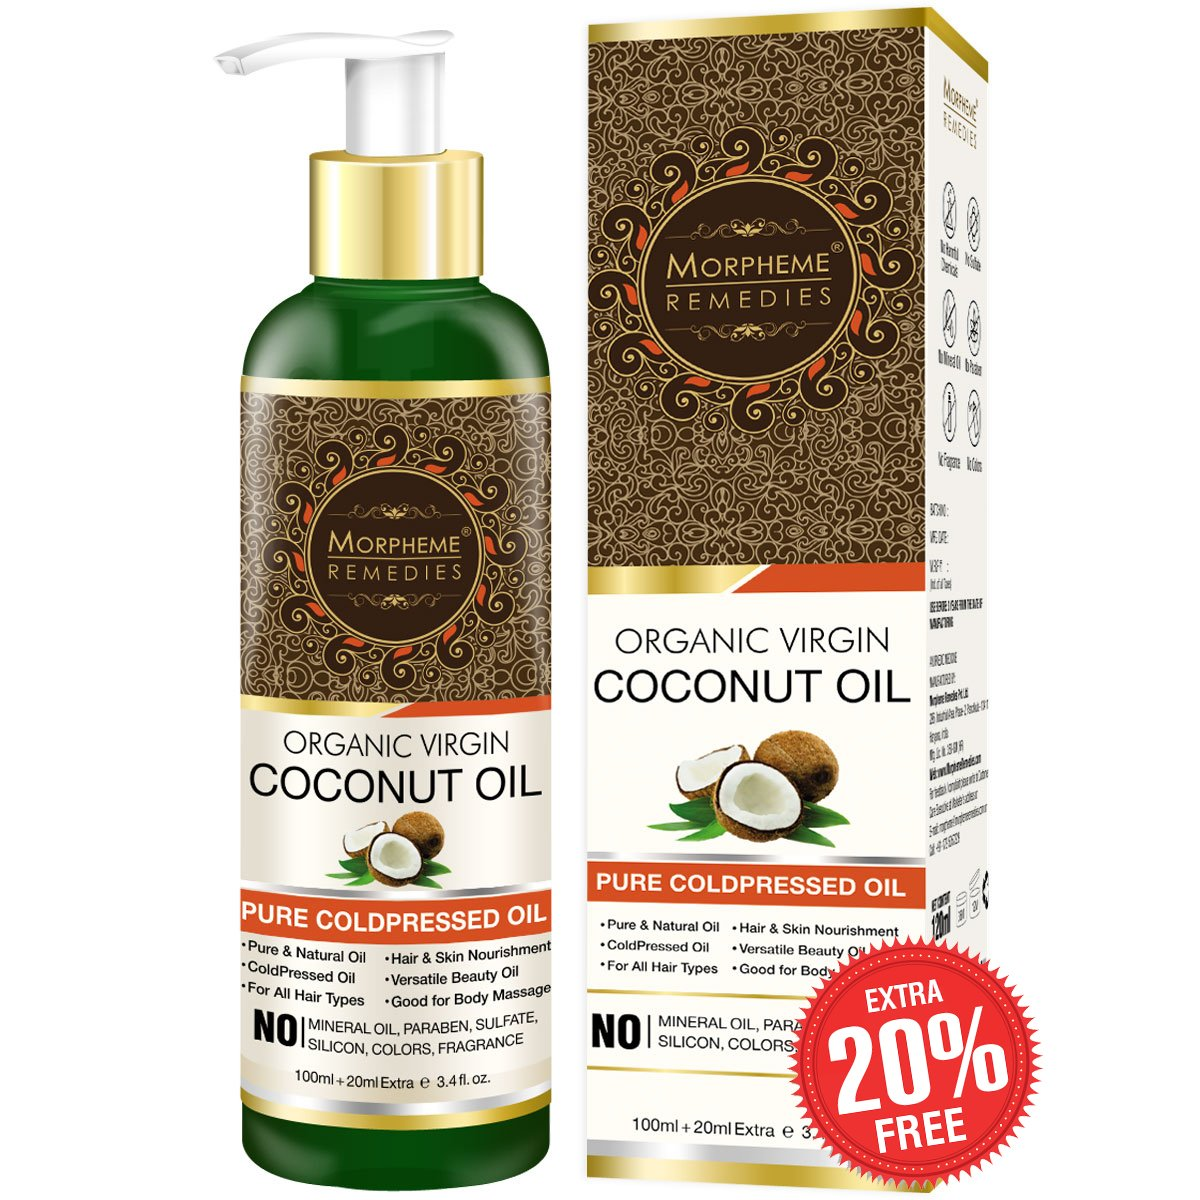 Morpheme Remedies Pure Cold Pressed Organic Virgin Coconut Oil for Hair and Skin, 120ml product image